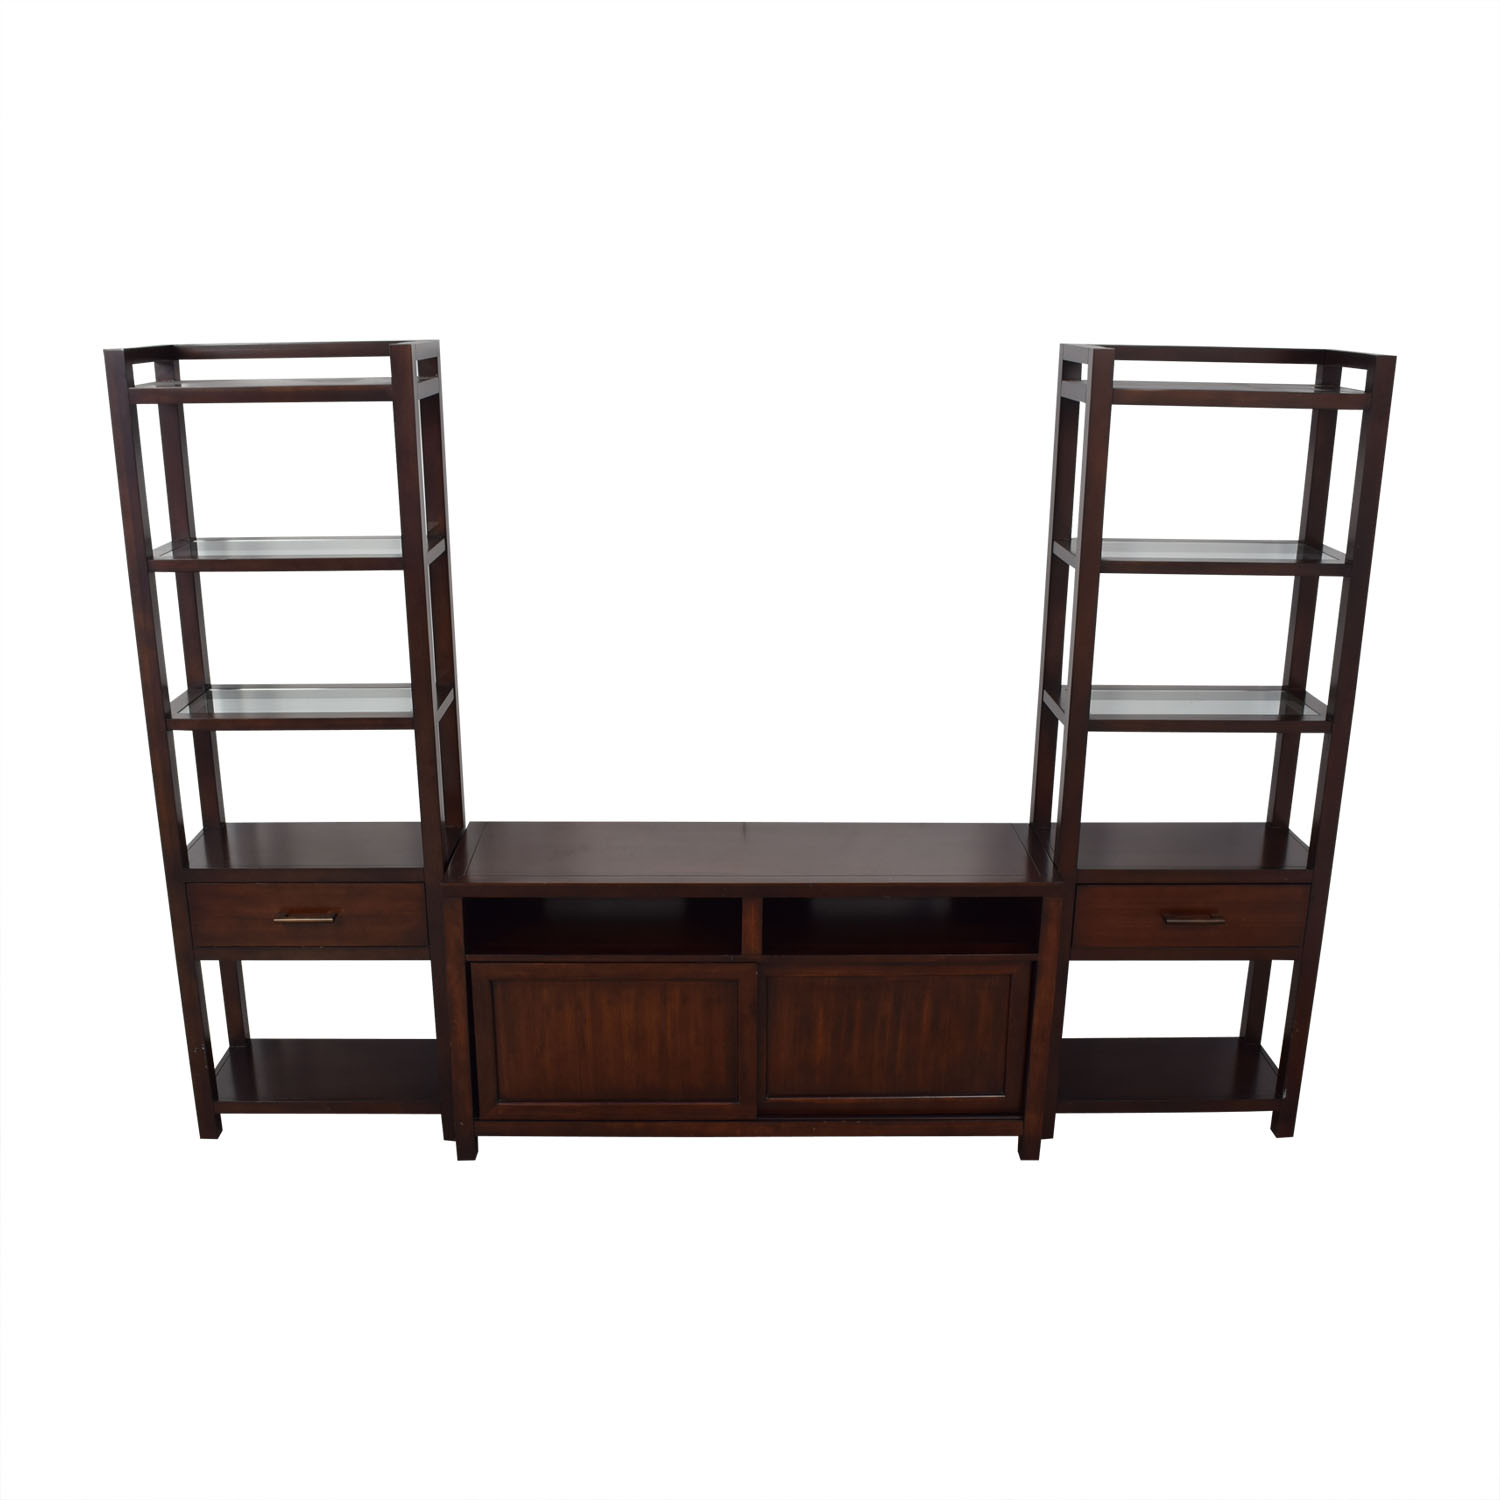 shop Crate & Barrel Media Console with Two Media Towers Crate & Barrel Media Units